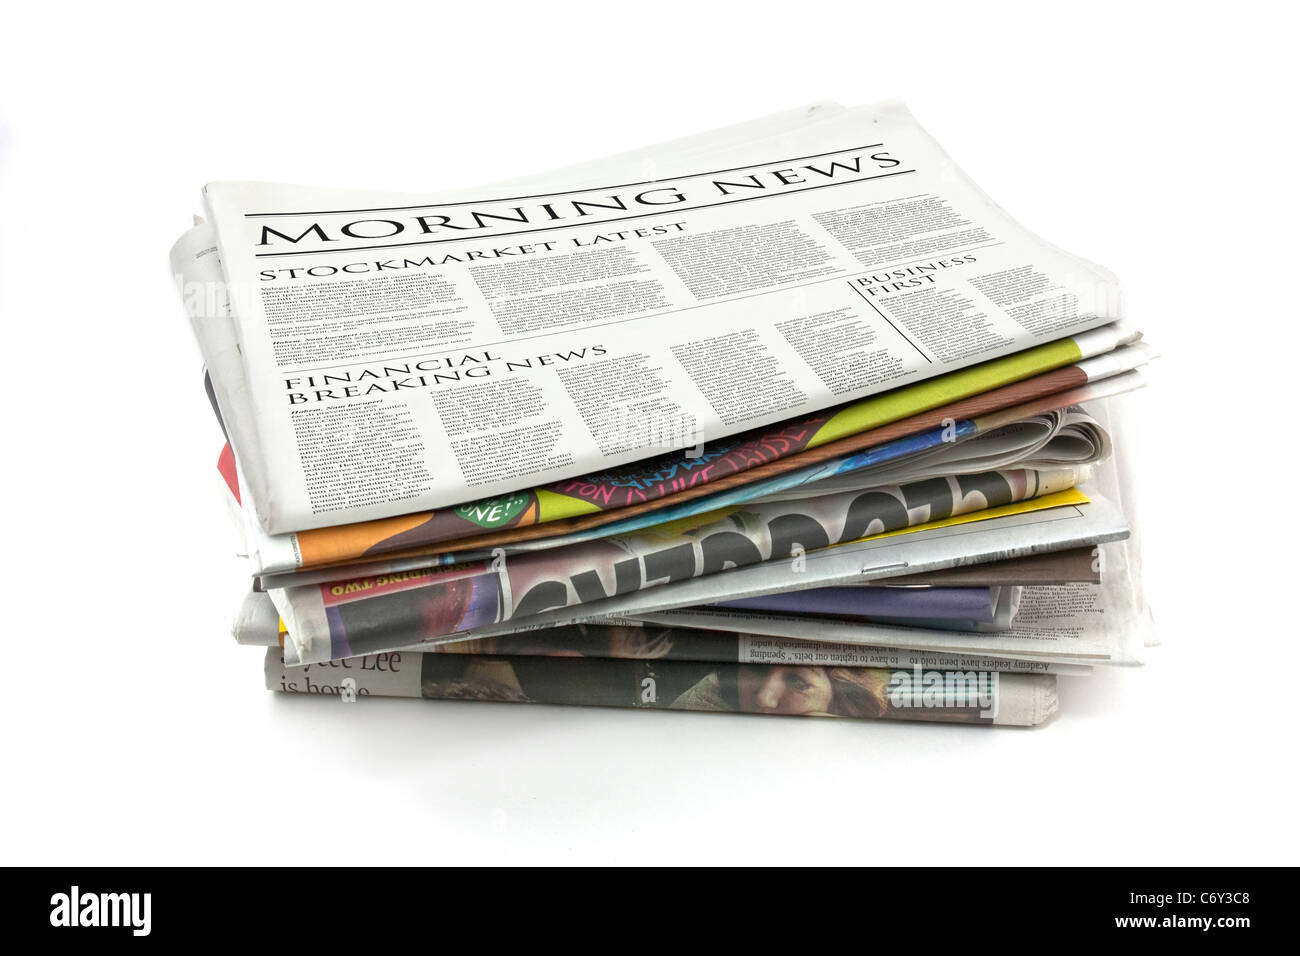 Generic design of a newspaper called morning news - Stock Image